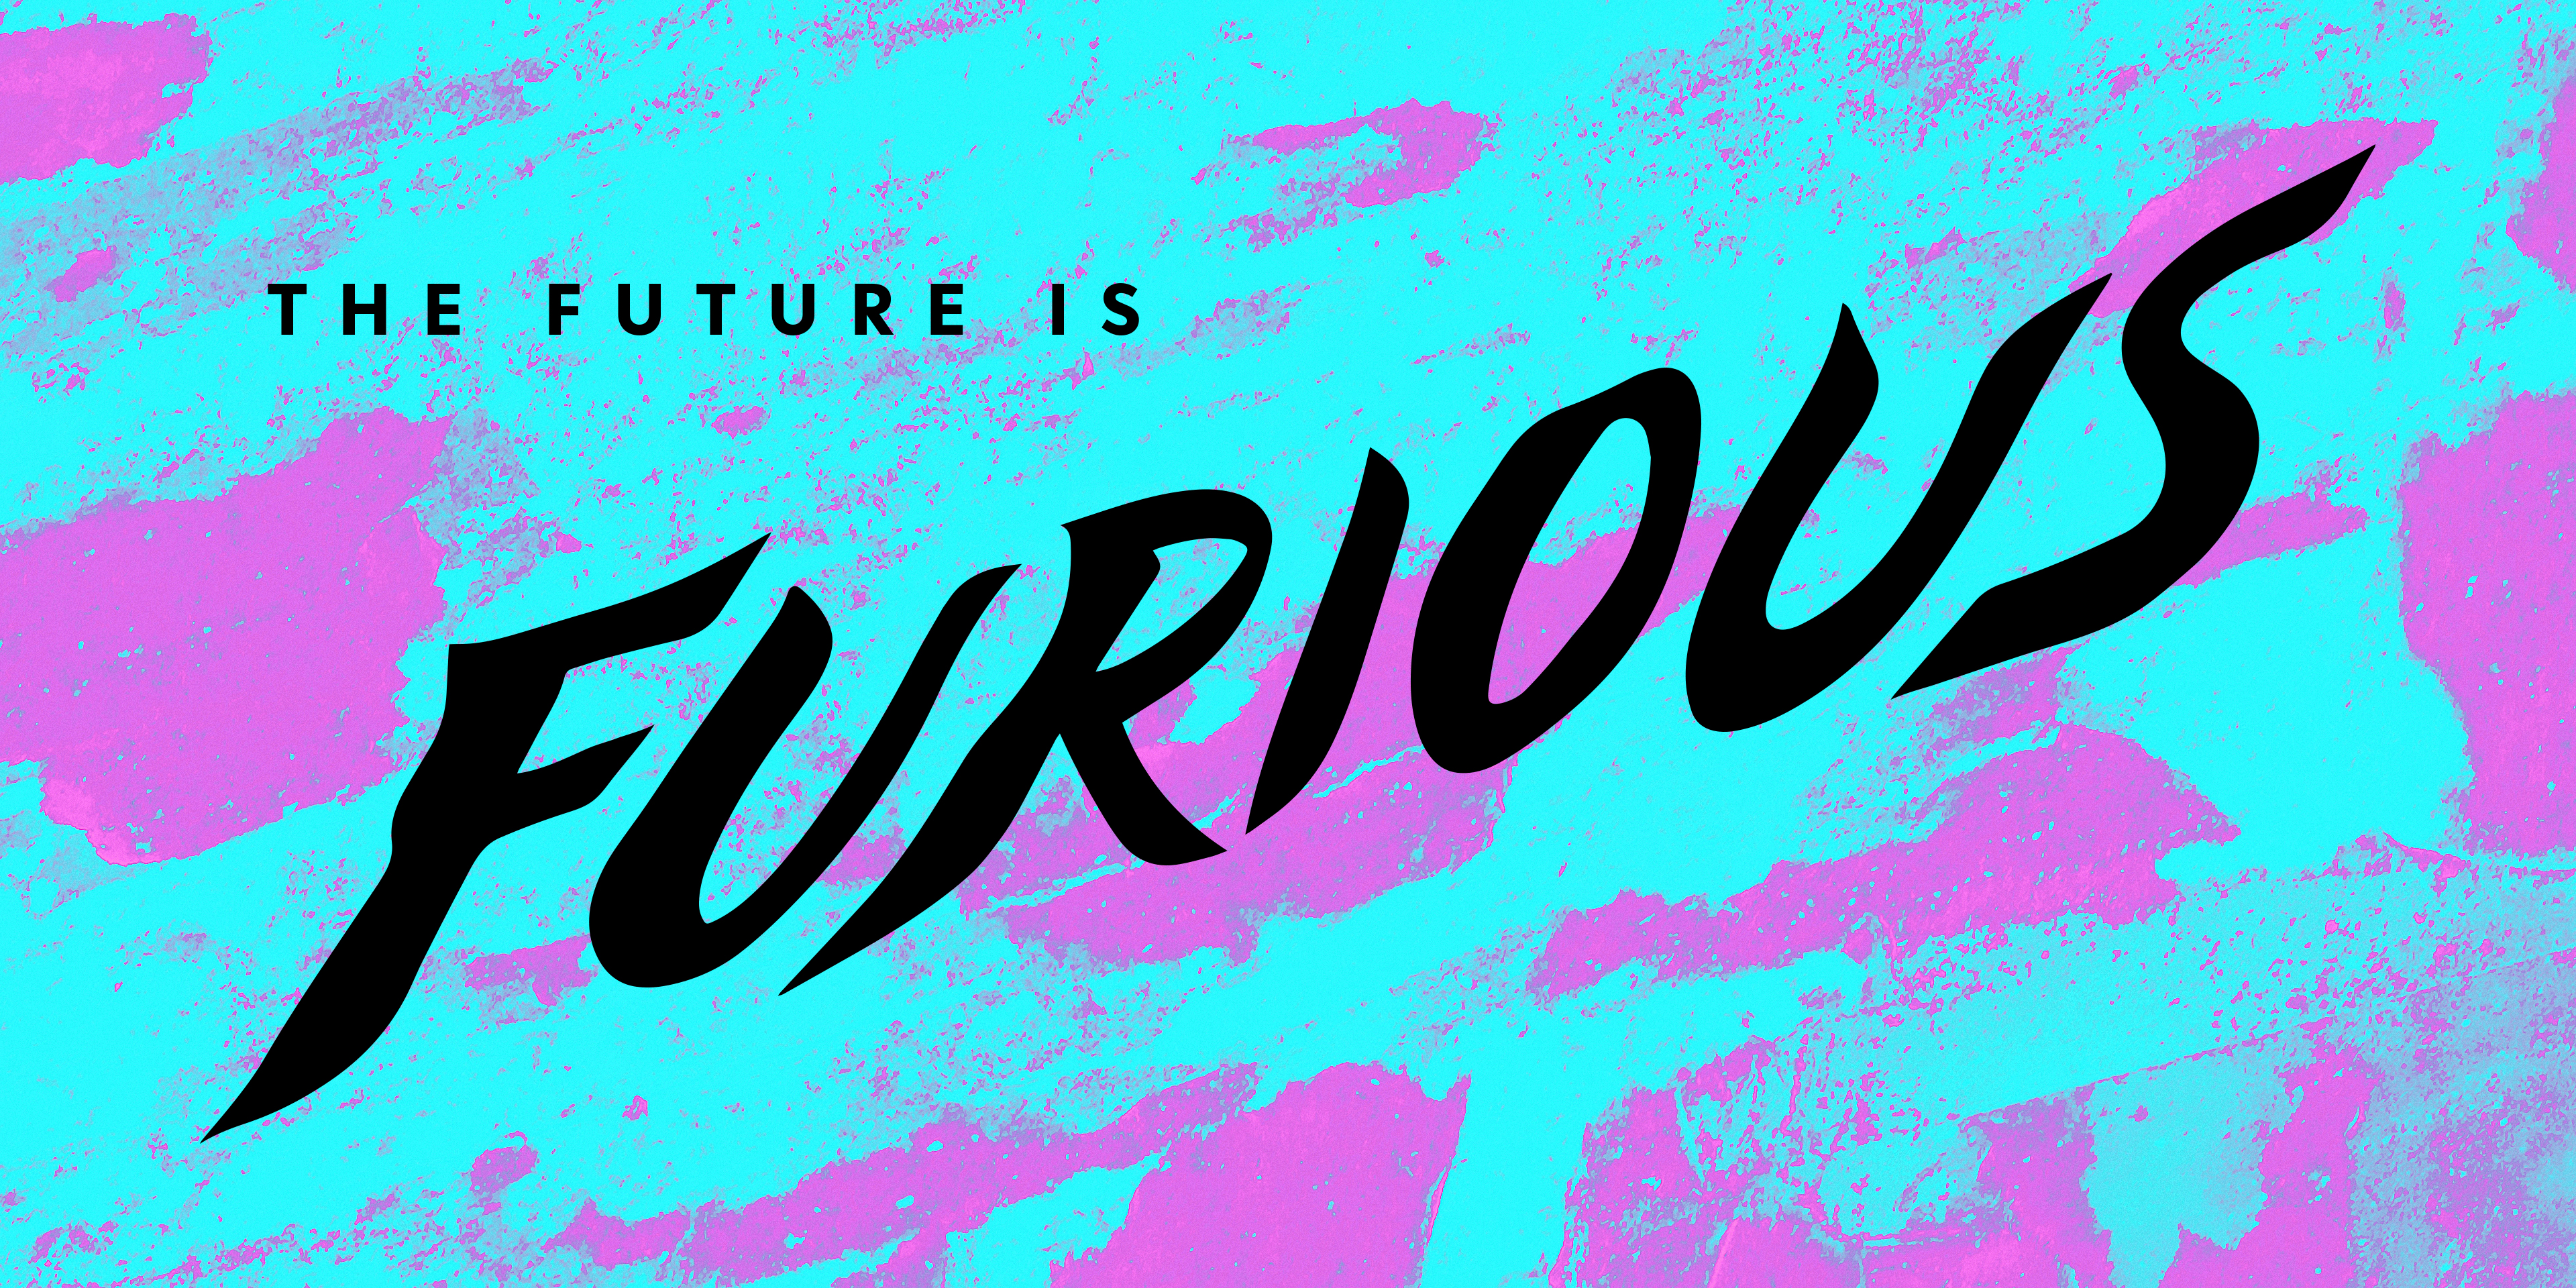 The Future is Furious title in black on a purple and cyan textured background